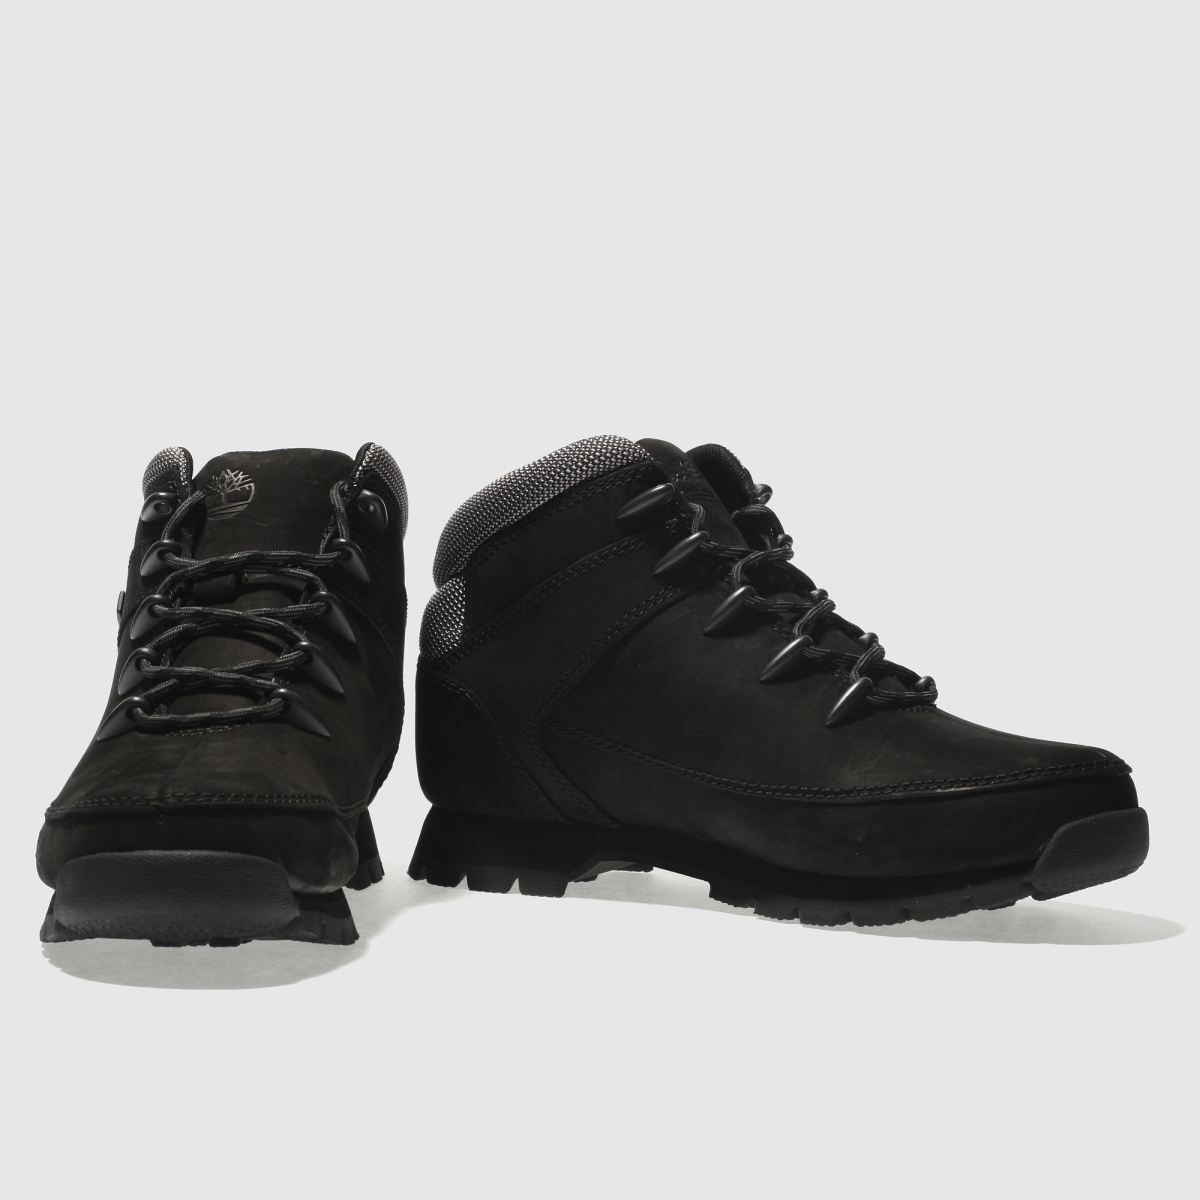 3322b99347d0 timberland black euro sprint hiker boots --   SCHUH - Online shop -shipping  to Croatia (5 euro or free over 75 euro)